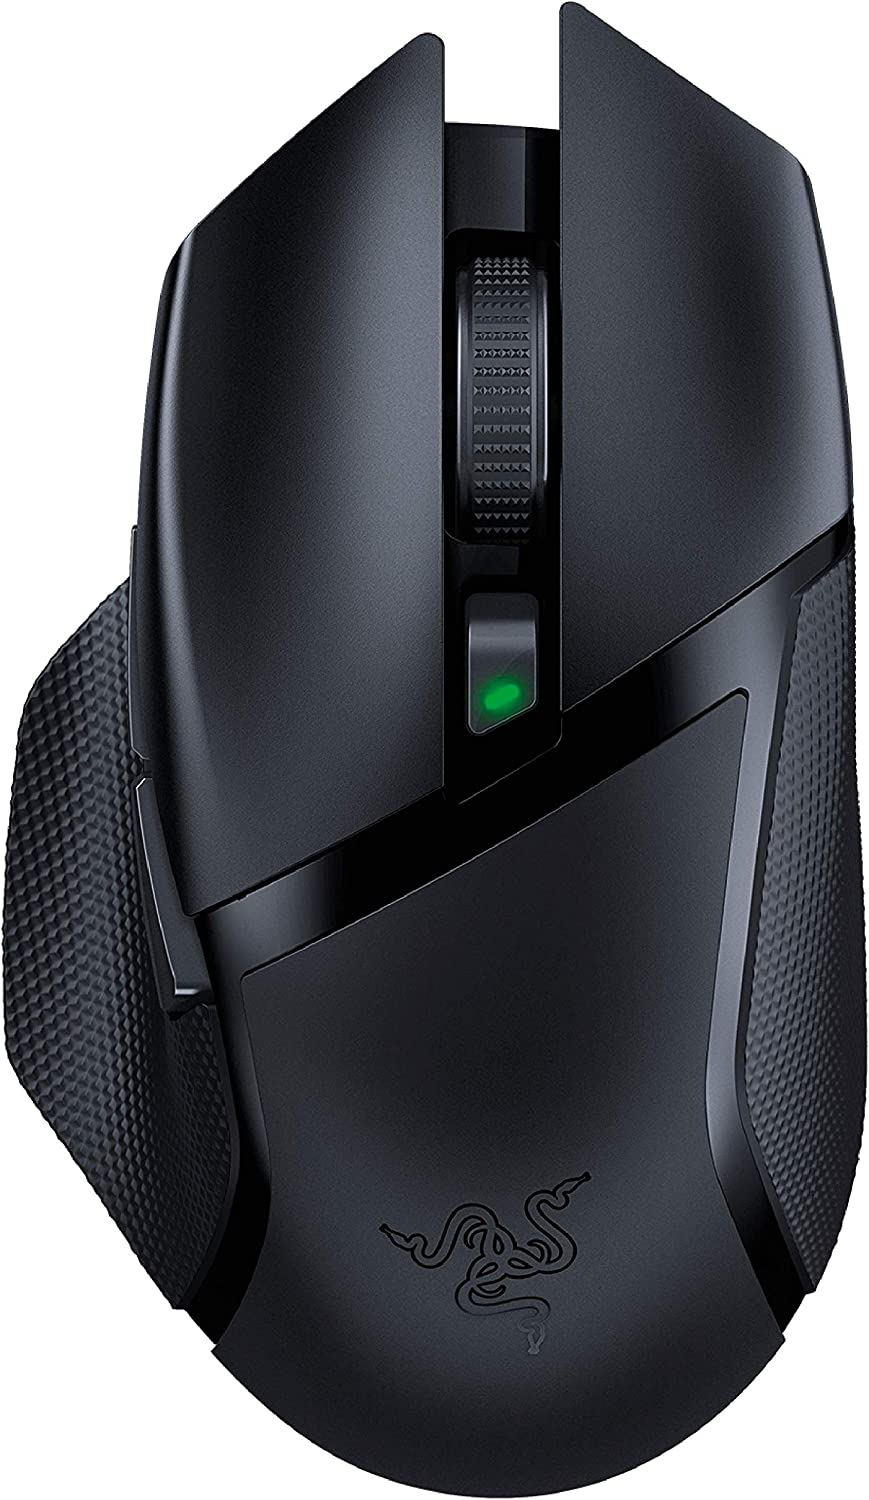 Razer Basilisk X HyperSpeed Wireless Gaming Mouse: Bluetooth & Wireless Compatible - 16K DPI Optical Sensor - 6 Programmable Buttons - 450 Hr Battery - Classic Black